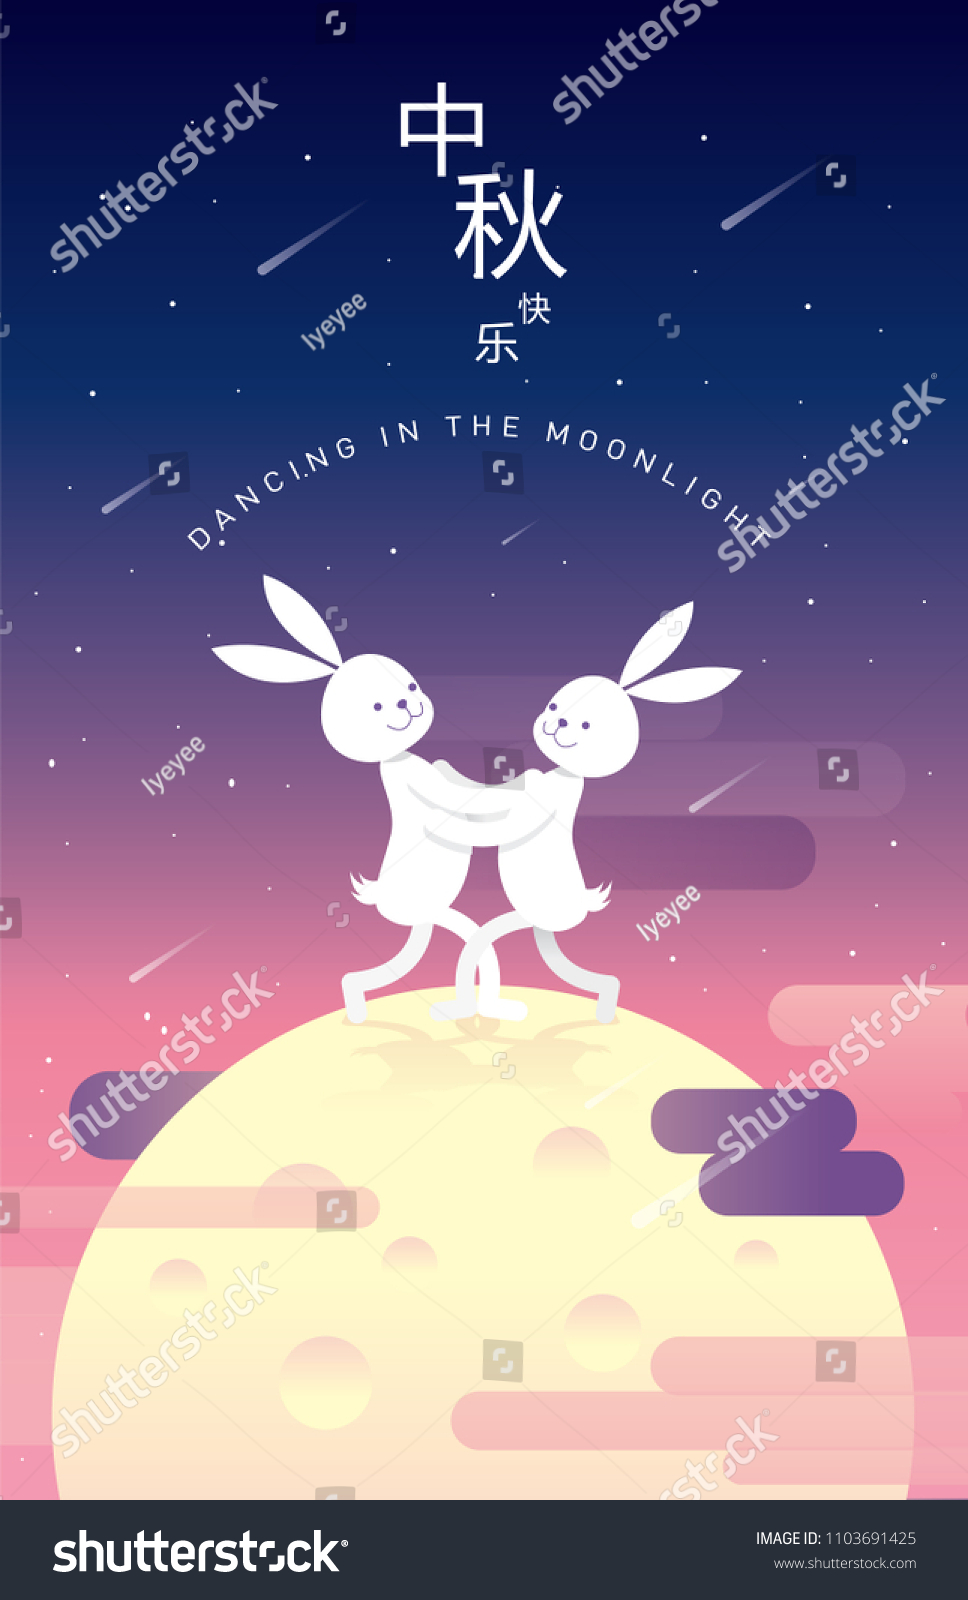 Mooncake festivalmid autumn festival greetings template stock vector mooncake festivalmid autumn festival greetings template vectorillustration with rabbits dancing in the m4hsunfo